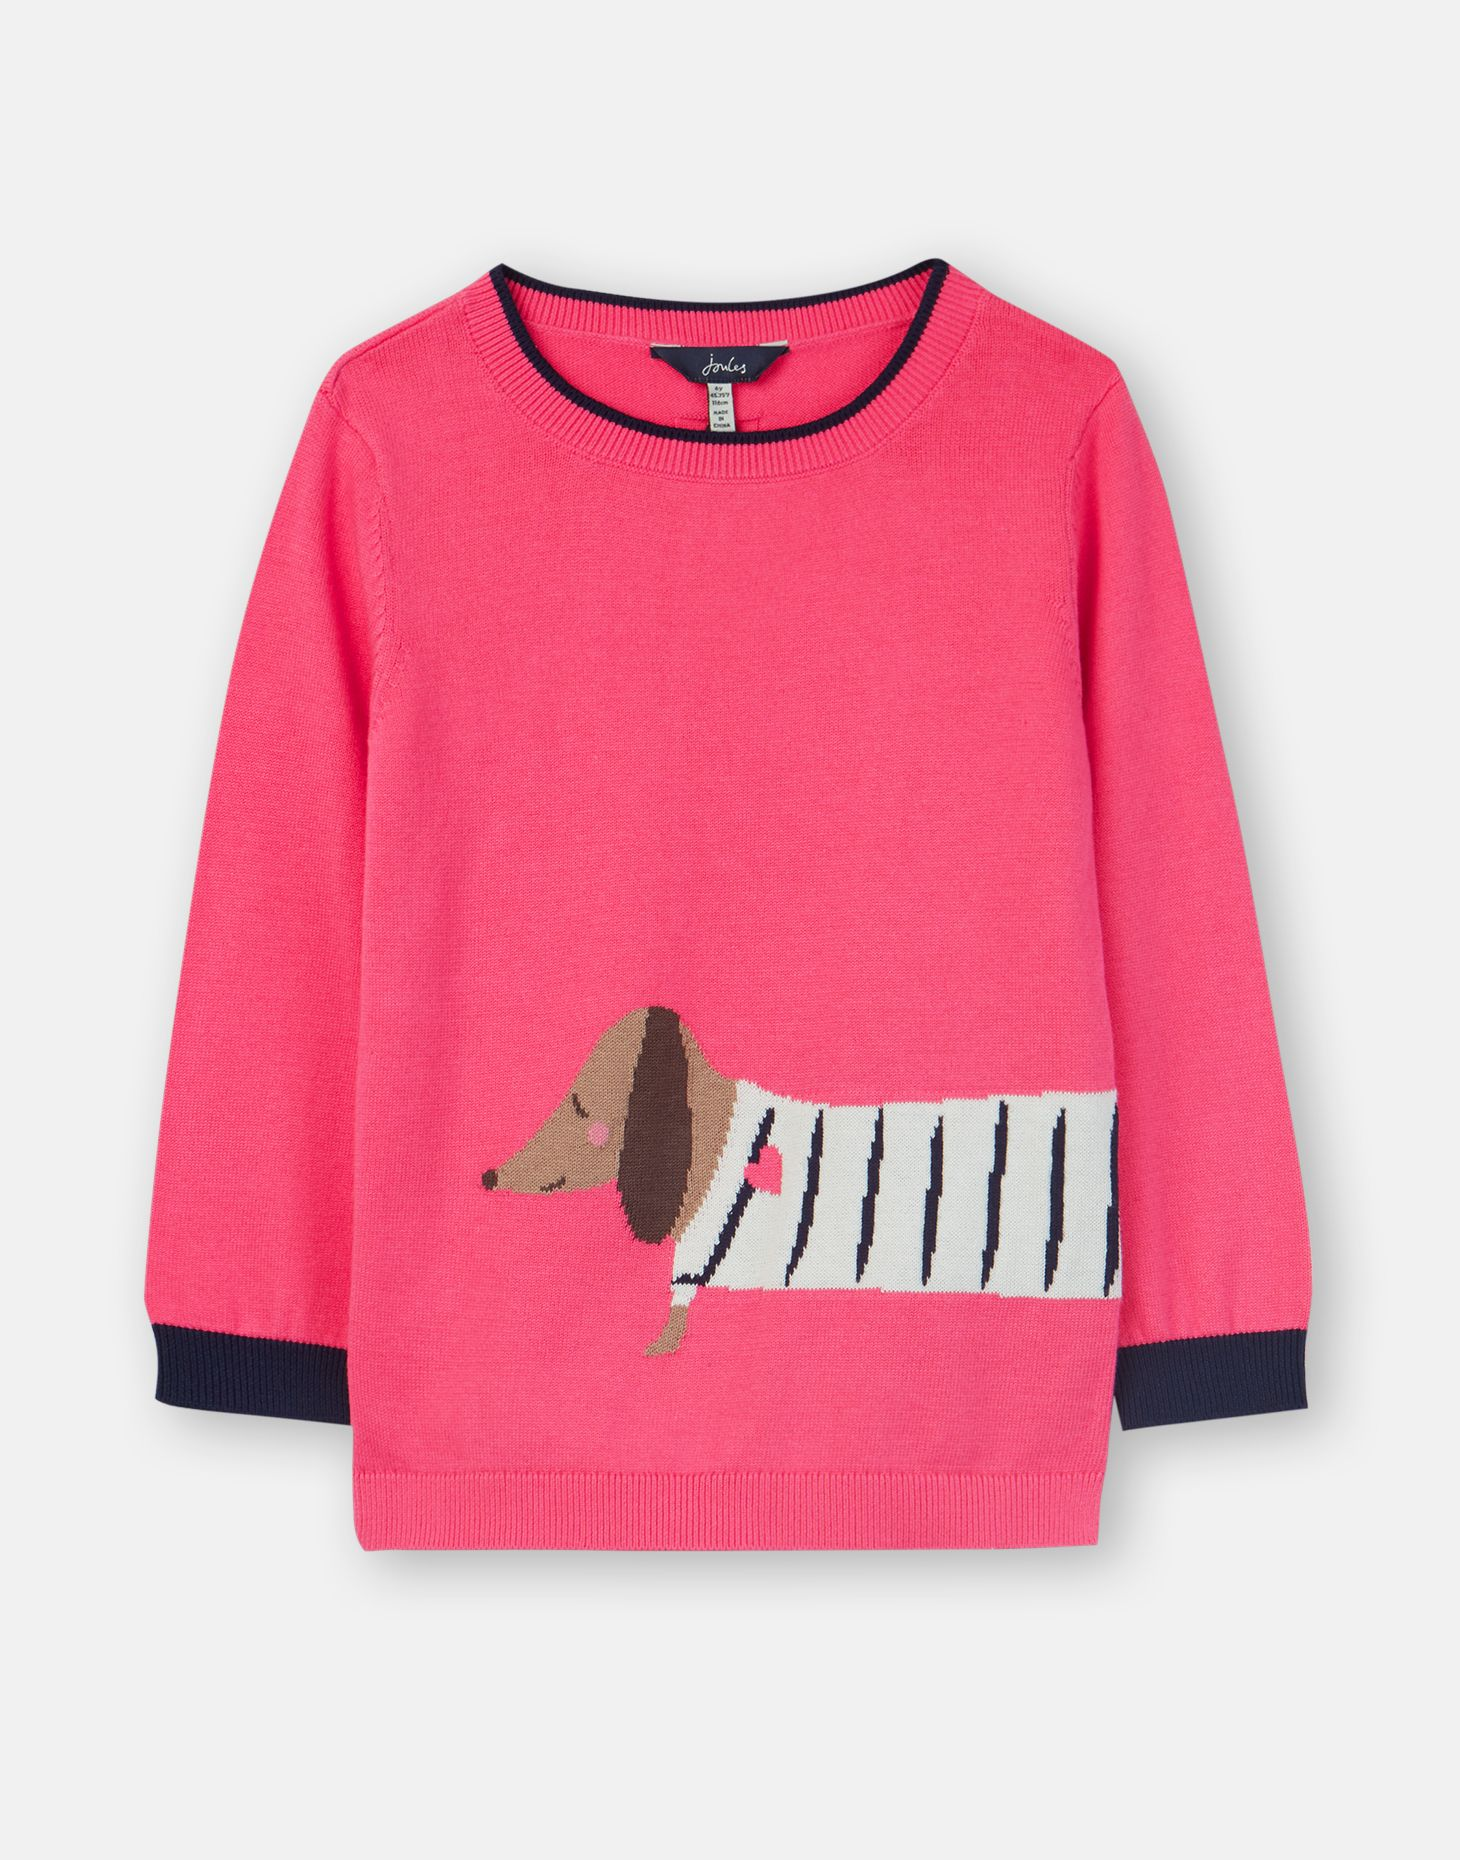 5 6 year Joules Girls Pink Knitted Jumper with Sausage Dauschand Dog Age 4